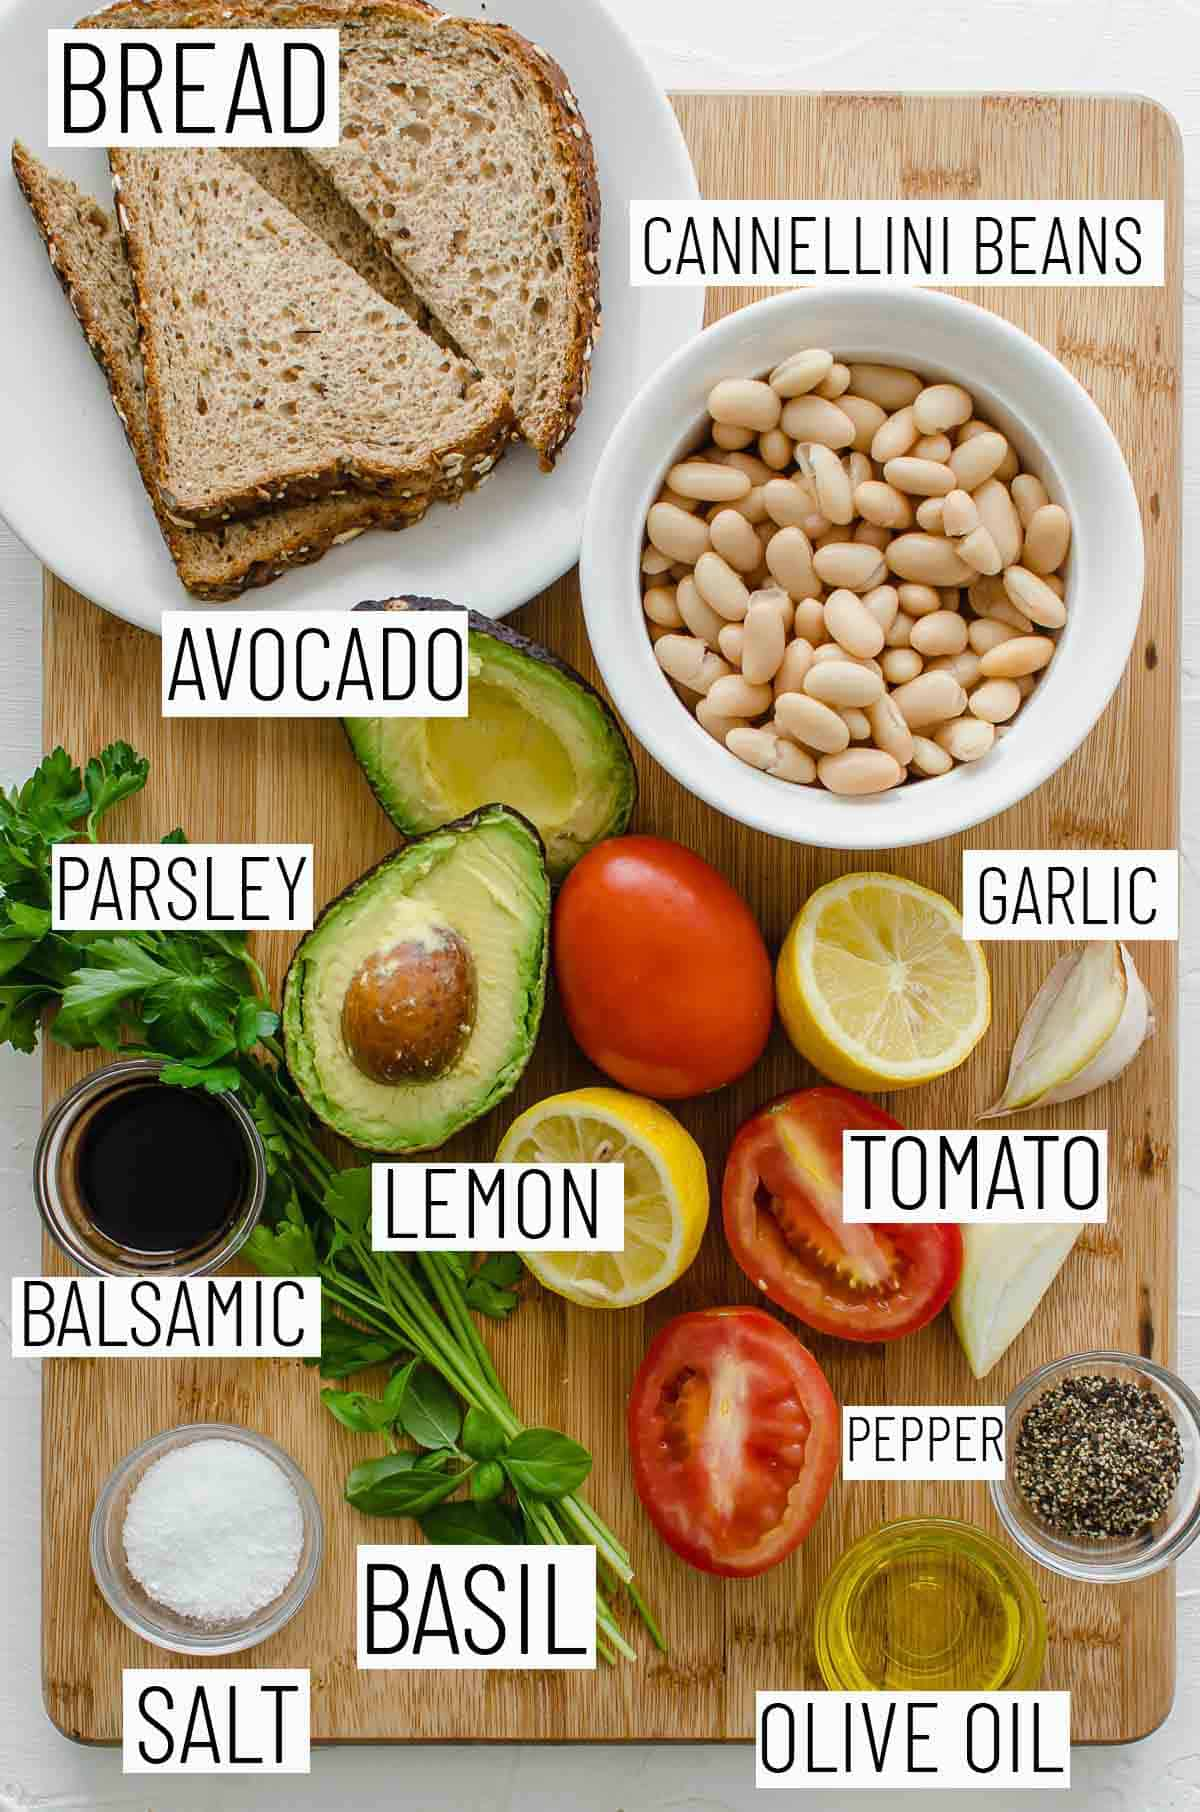 Flat lay image of recipe ingredients including lemon, pepper, Roma tomatos, olive oil, salt, basil, balsamic, parsley, white bean, avocado, and bread.